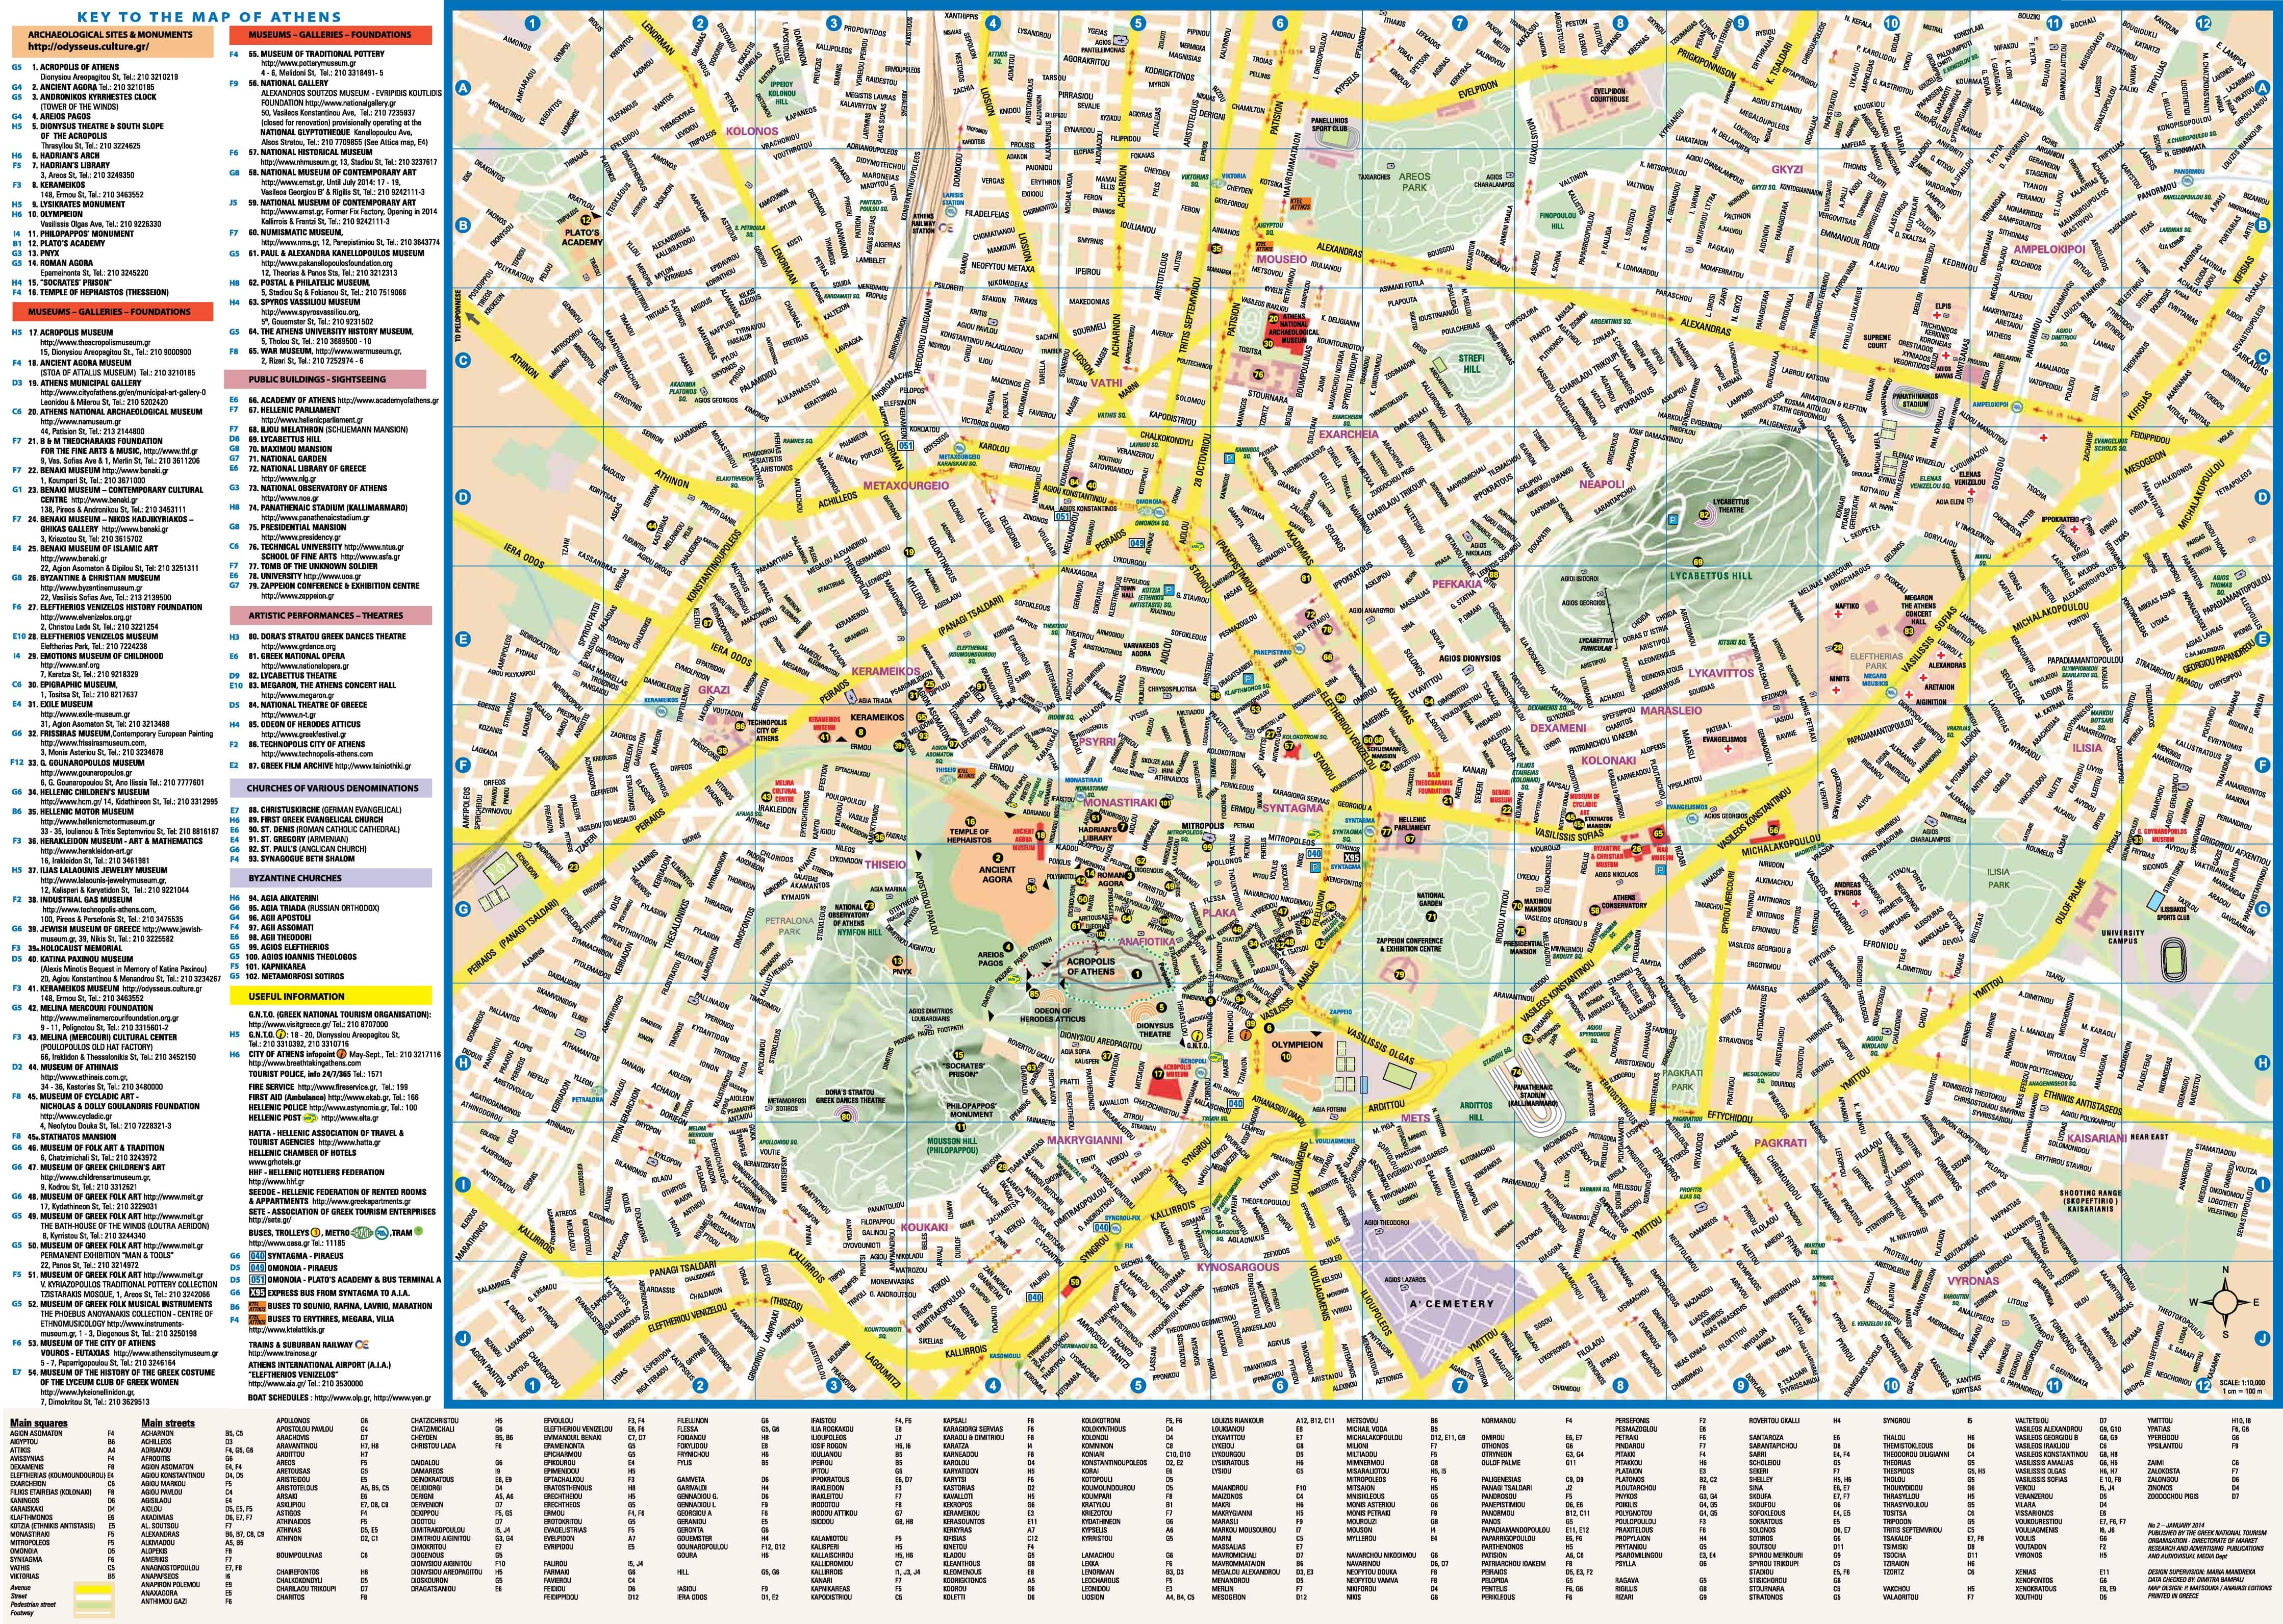 Map of Athen's tourist attractions